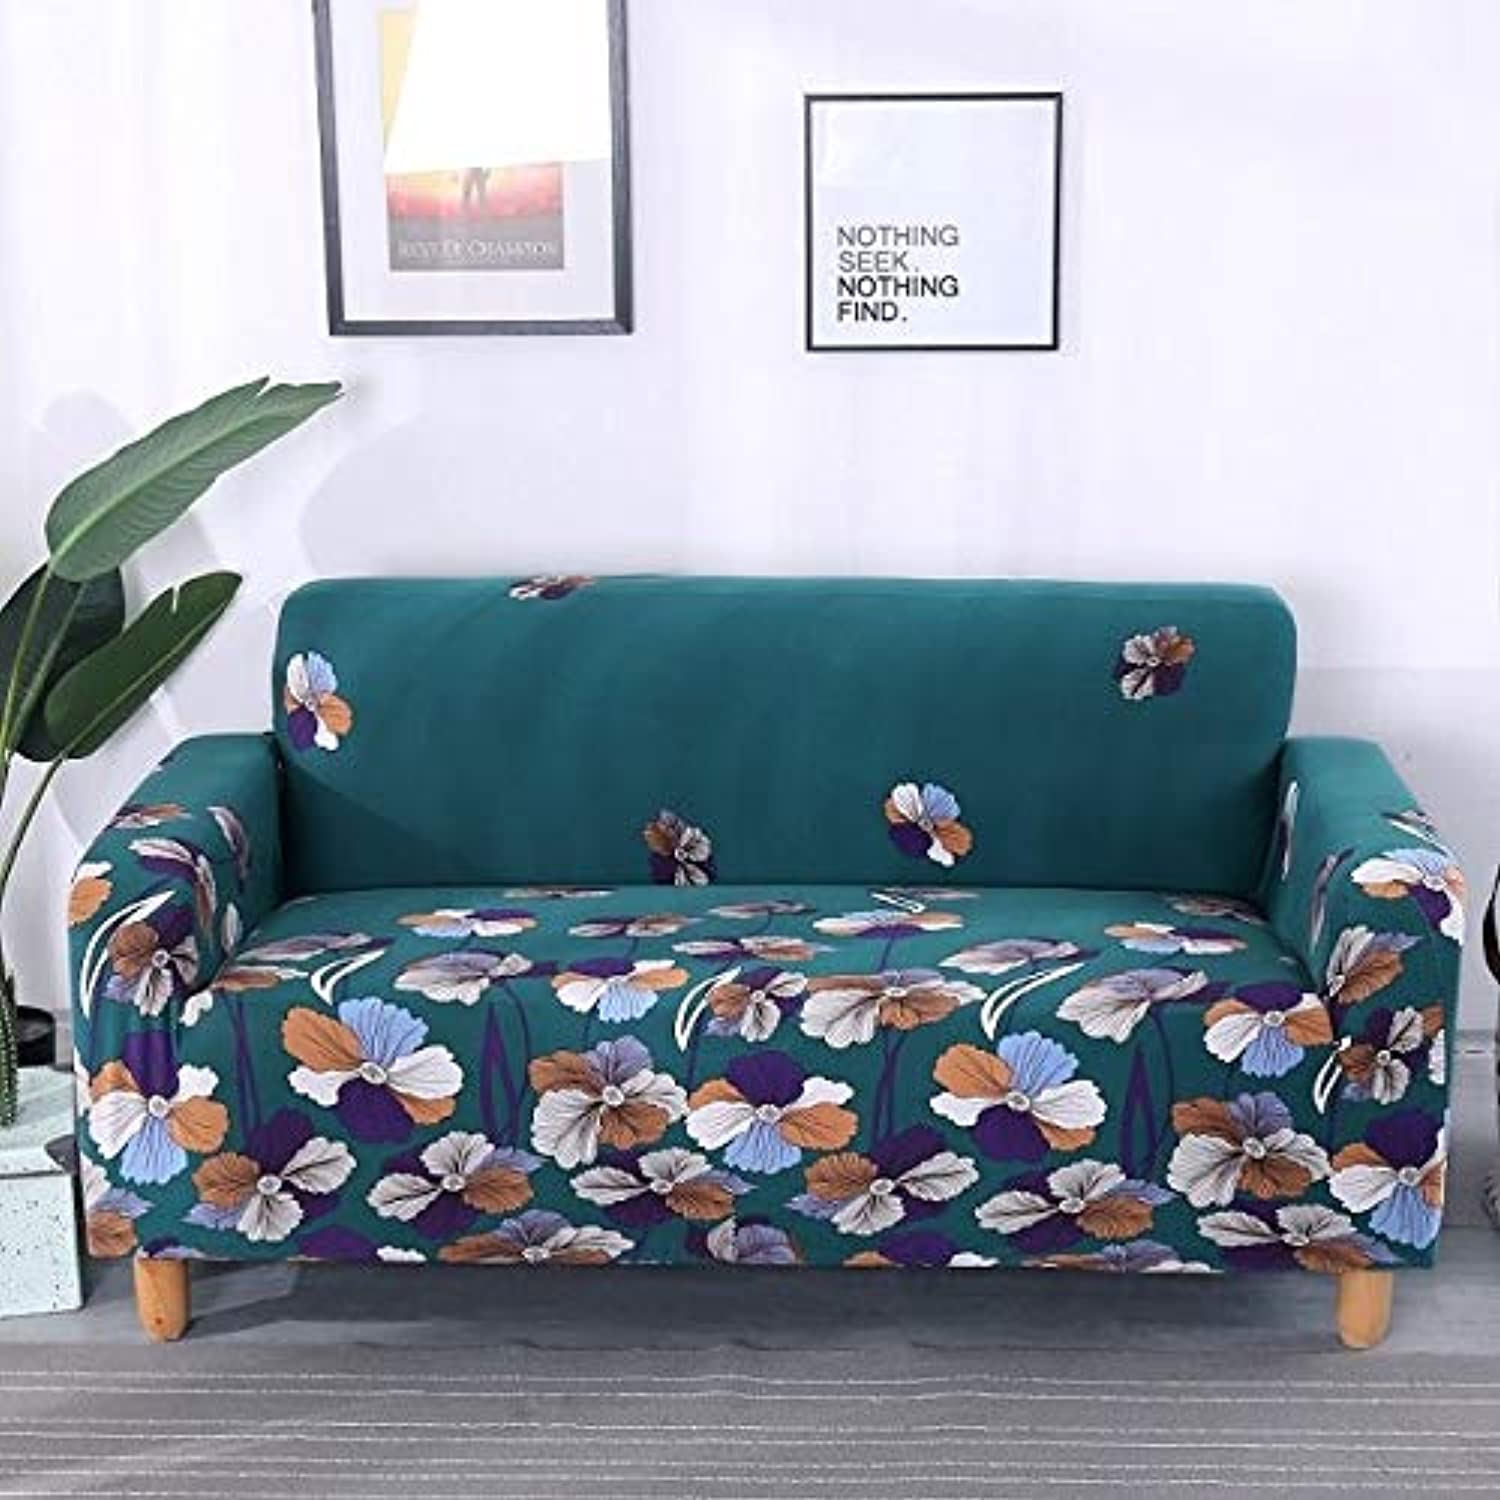 Tight Wrap All-Inclusive Sofa Cover Elastic Stretch European Printing Corner Seat Cover Sectional Universal Furniture Slipcover   color 22, 1seater 90-140cm